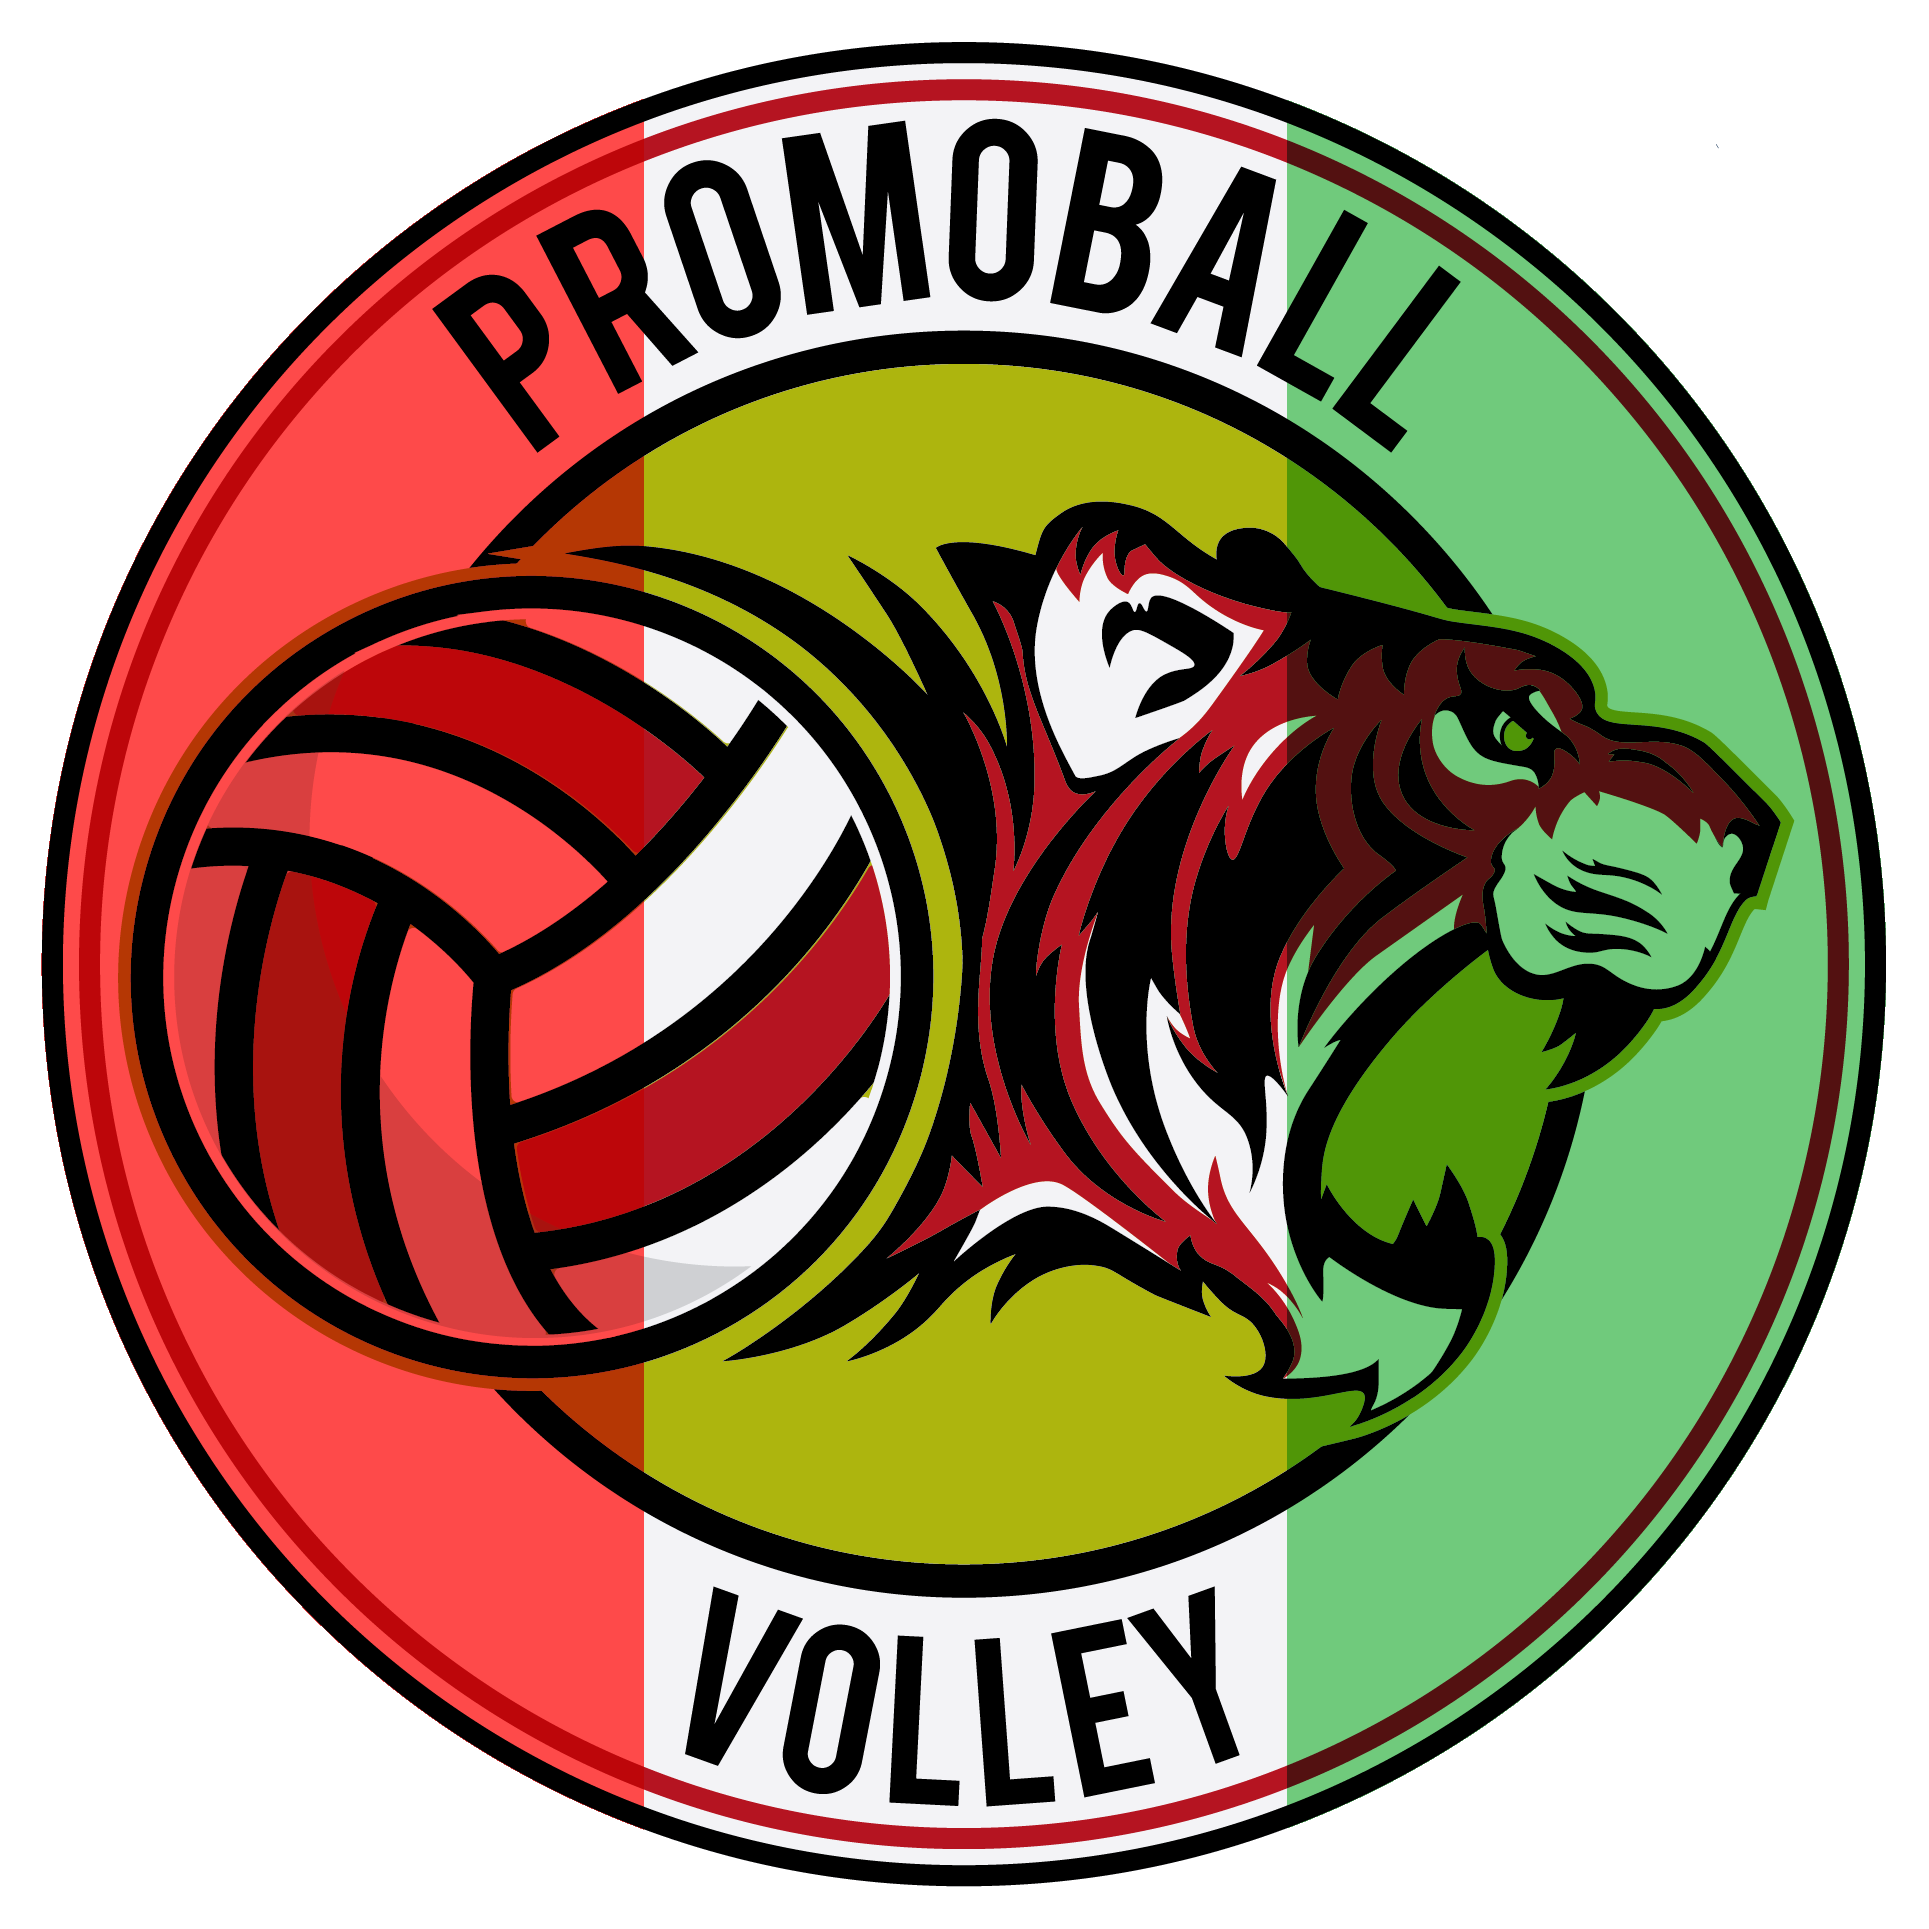 promoball nazionale